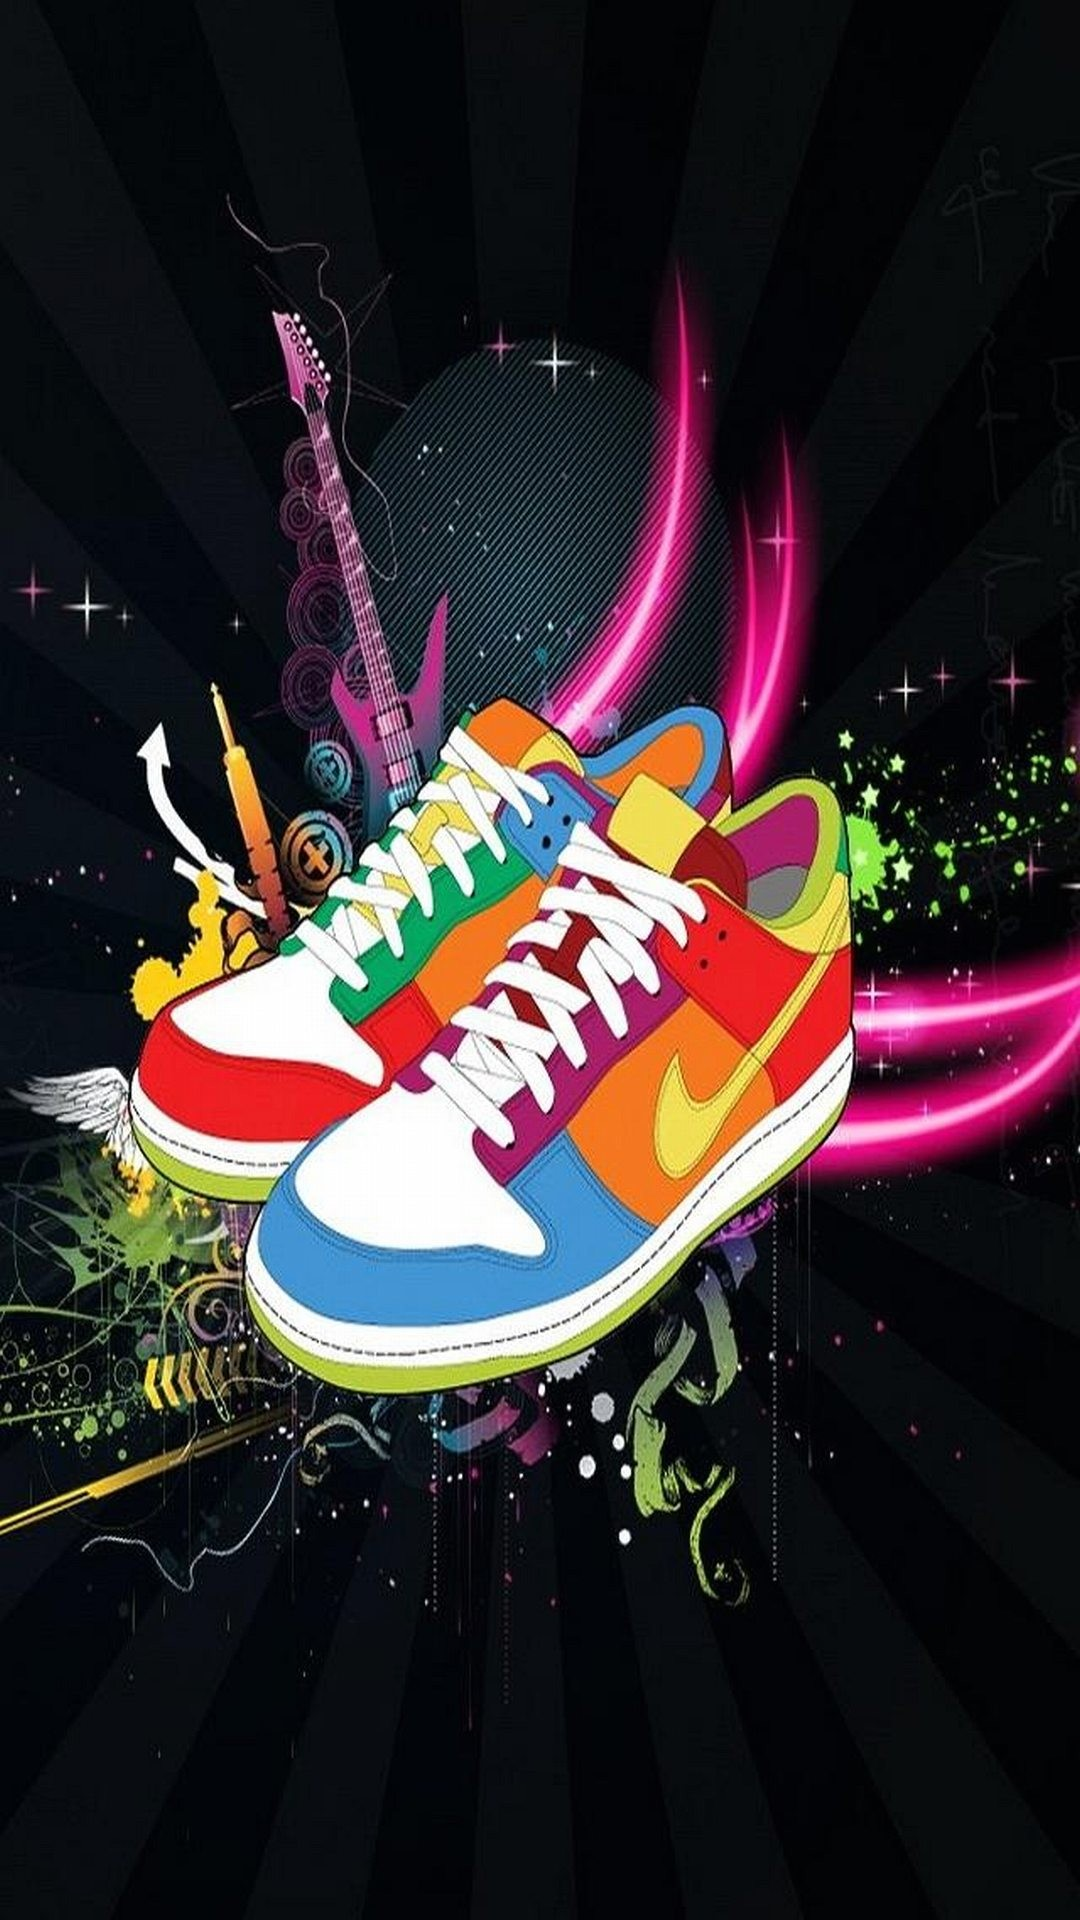 1080x1920 Art Multicolored Nike Shoes Black Cool Sneakers. Abstract Iphone WallpaperApp  WallpaperWallpaper BackgroundsNike ...